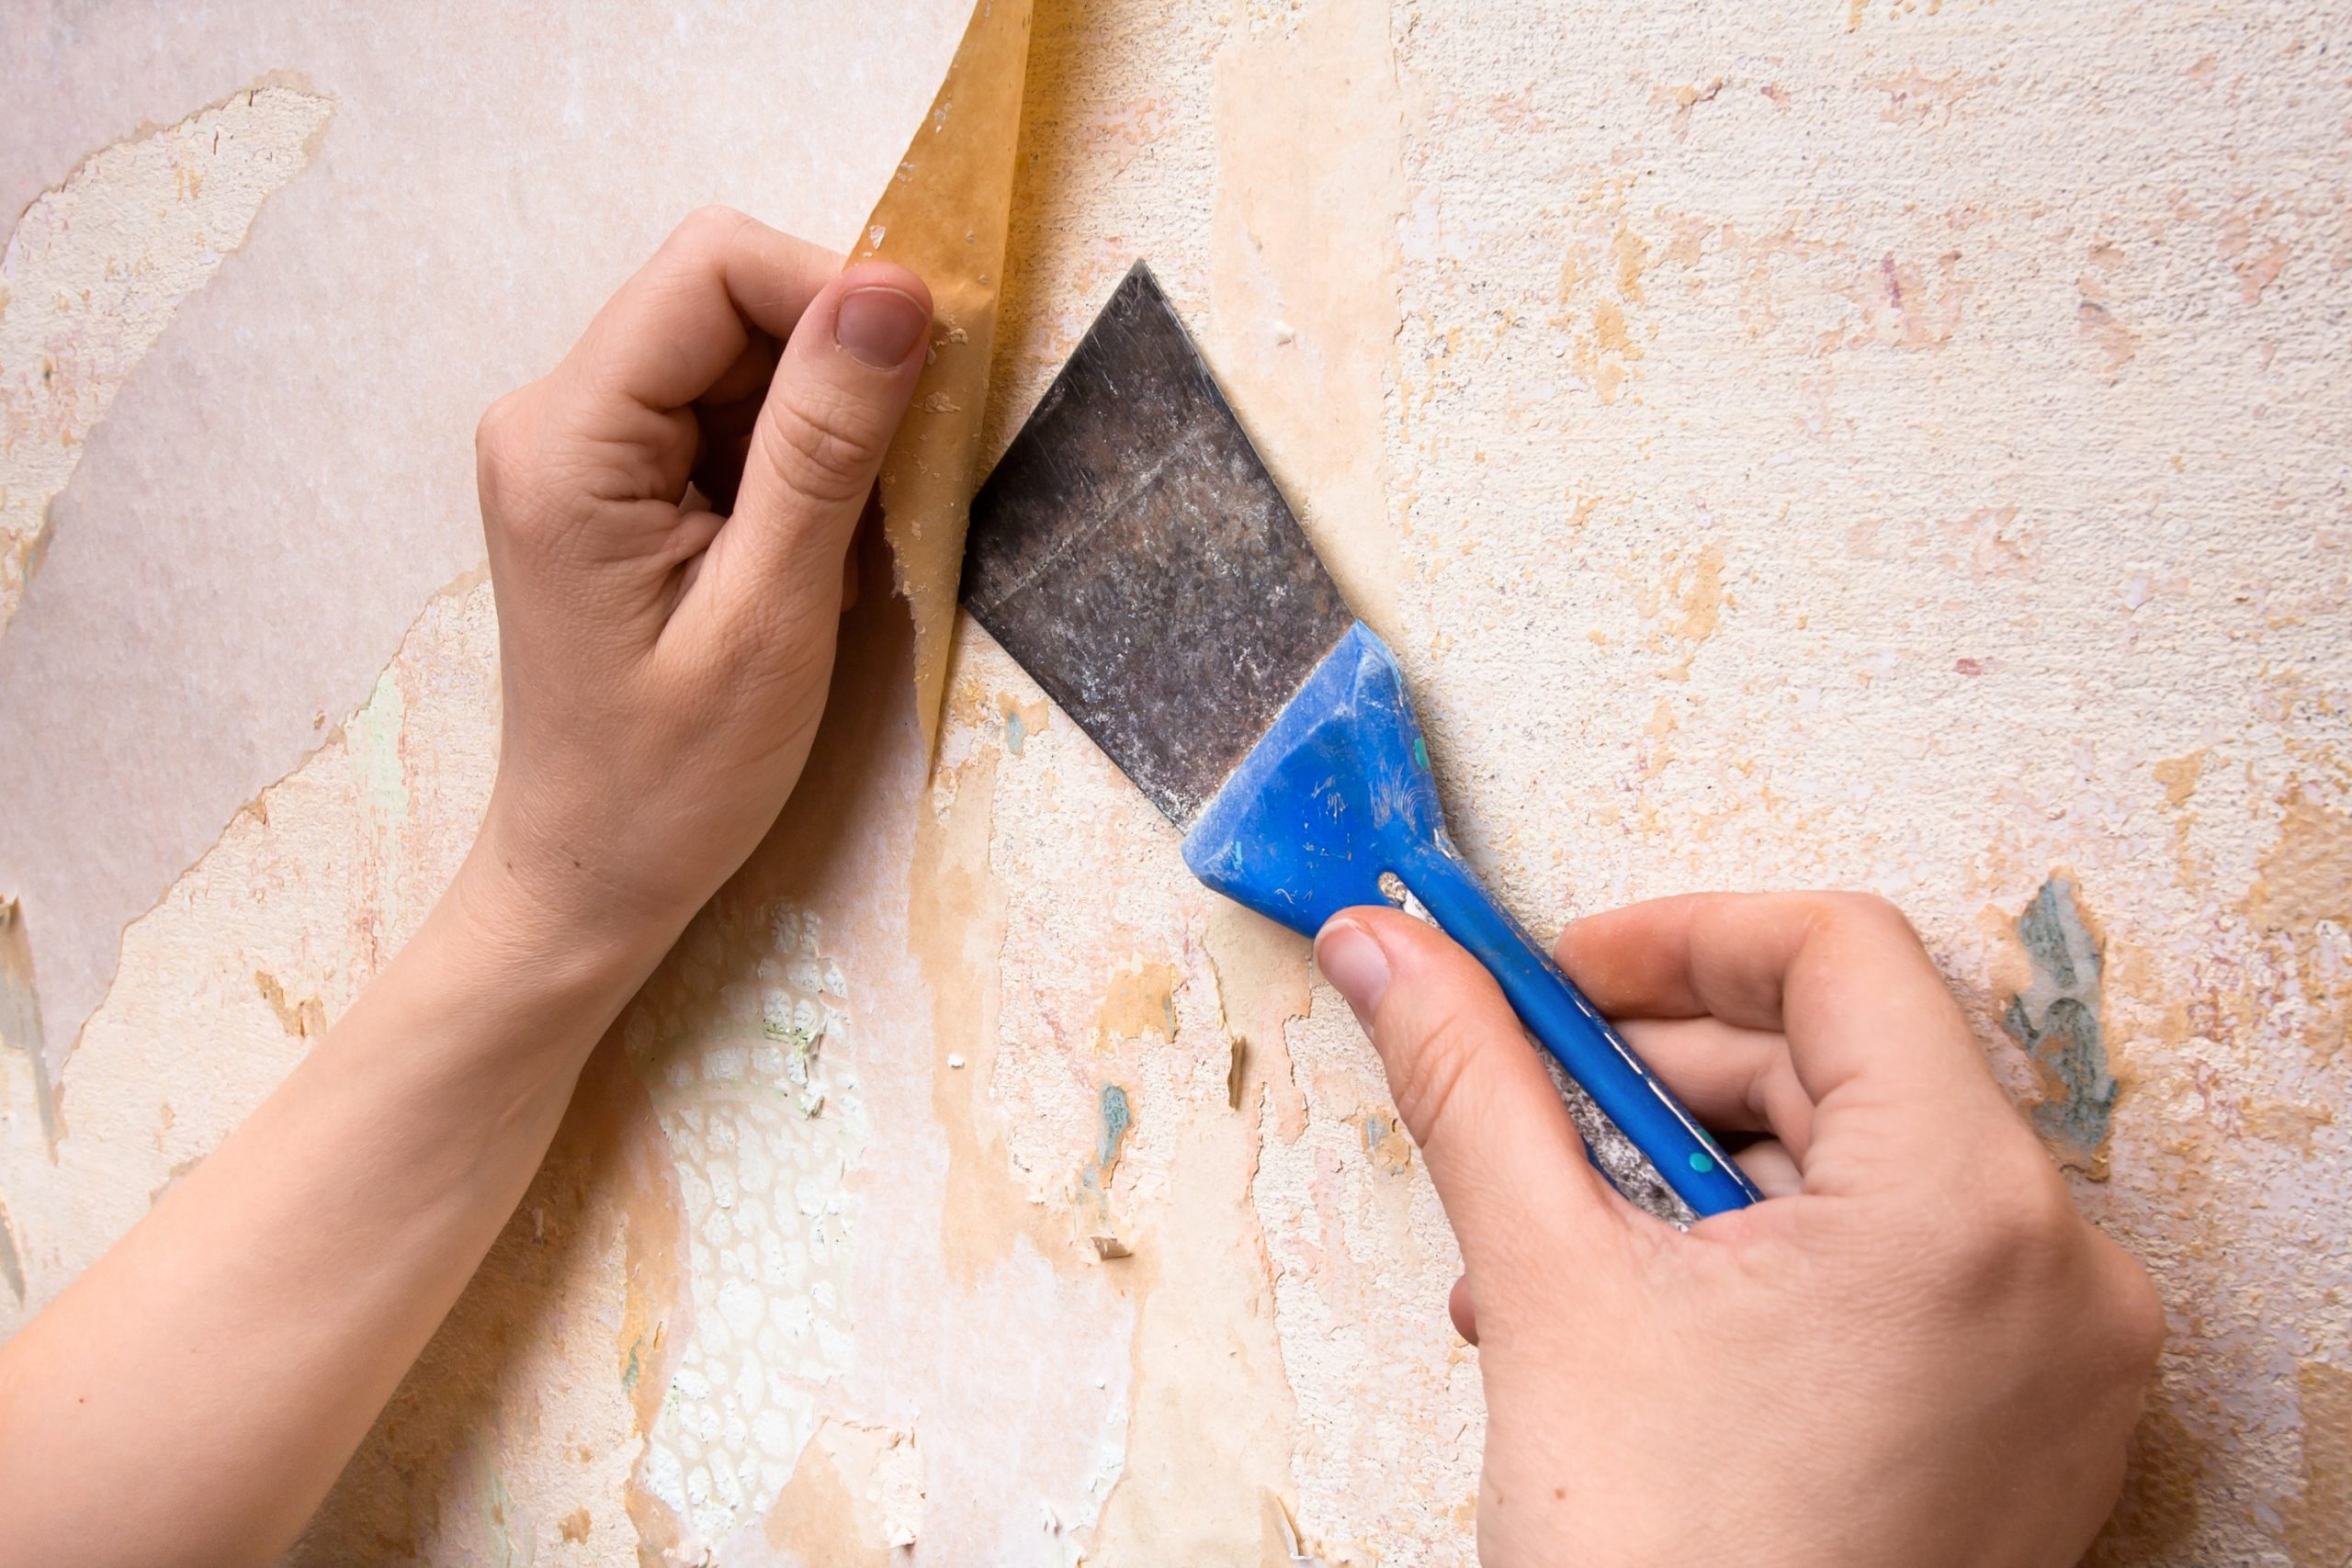 How to remove adhesive without damaging paint